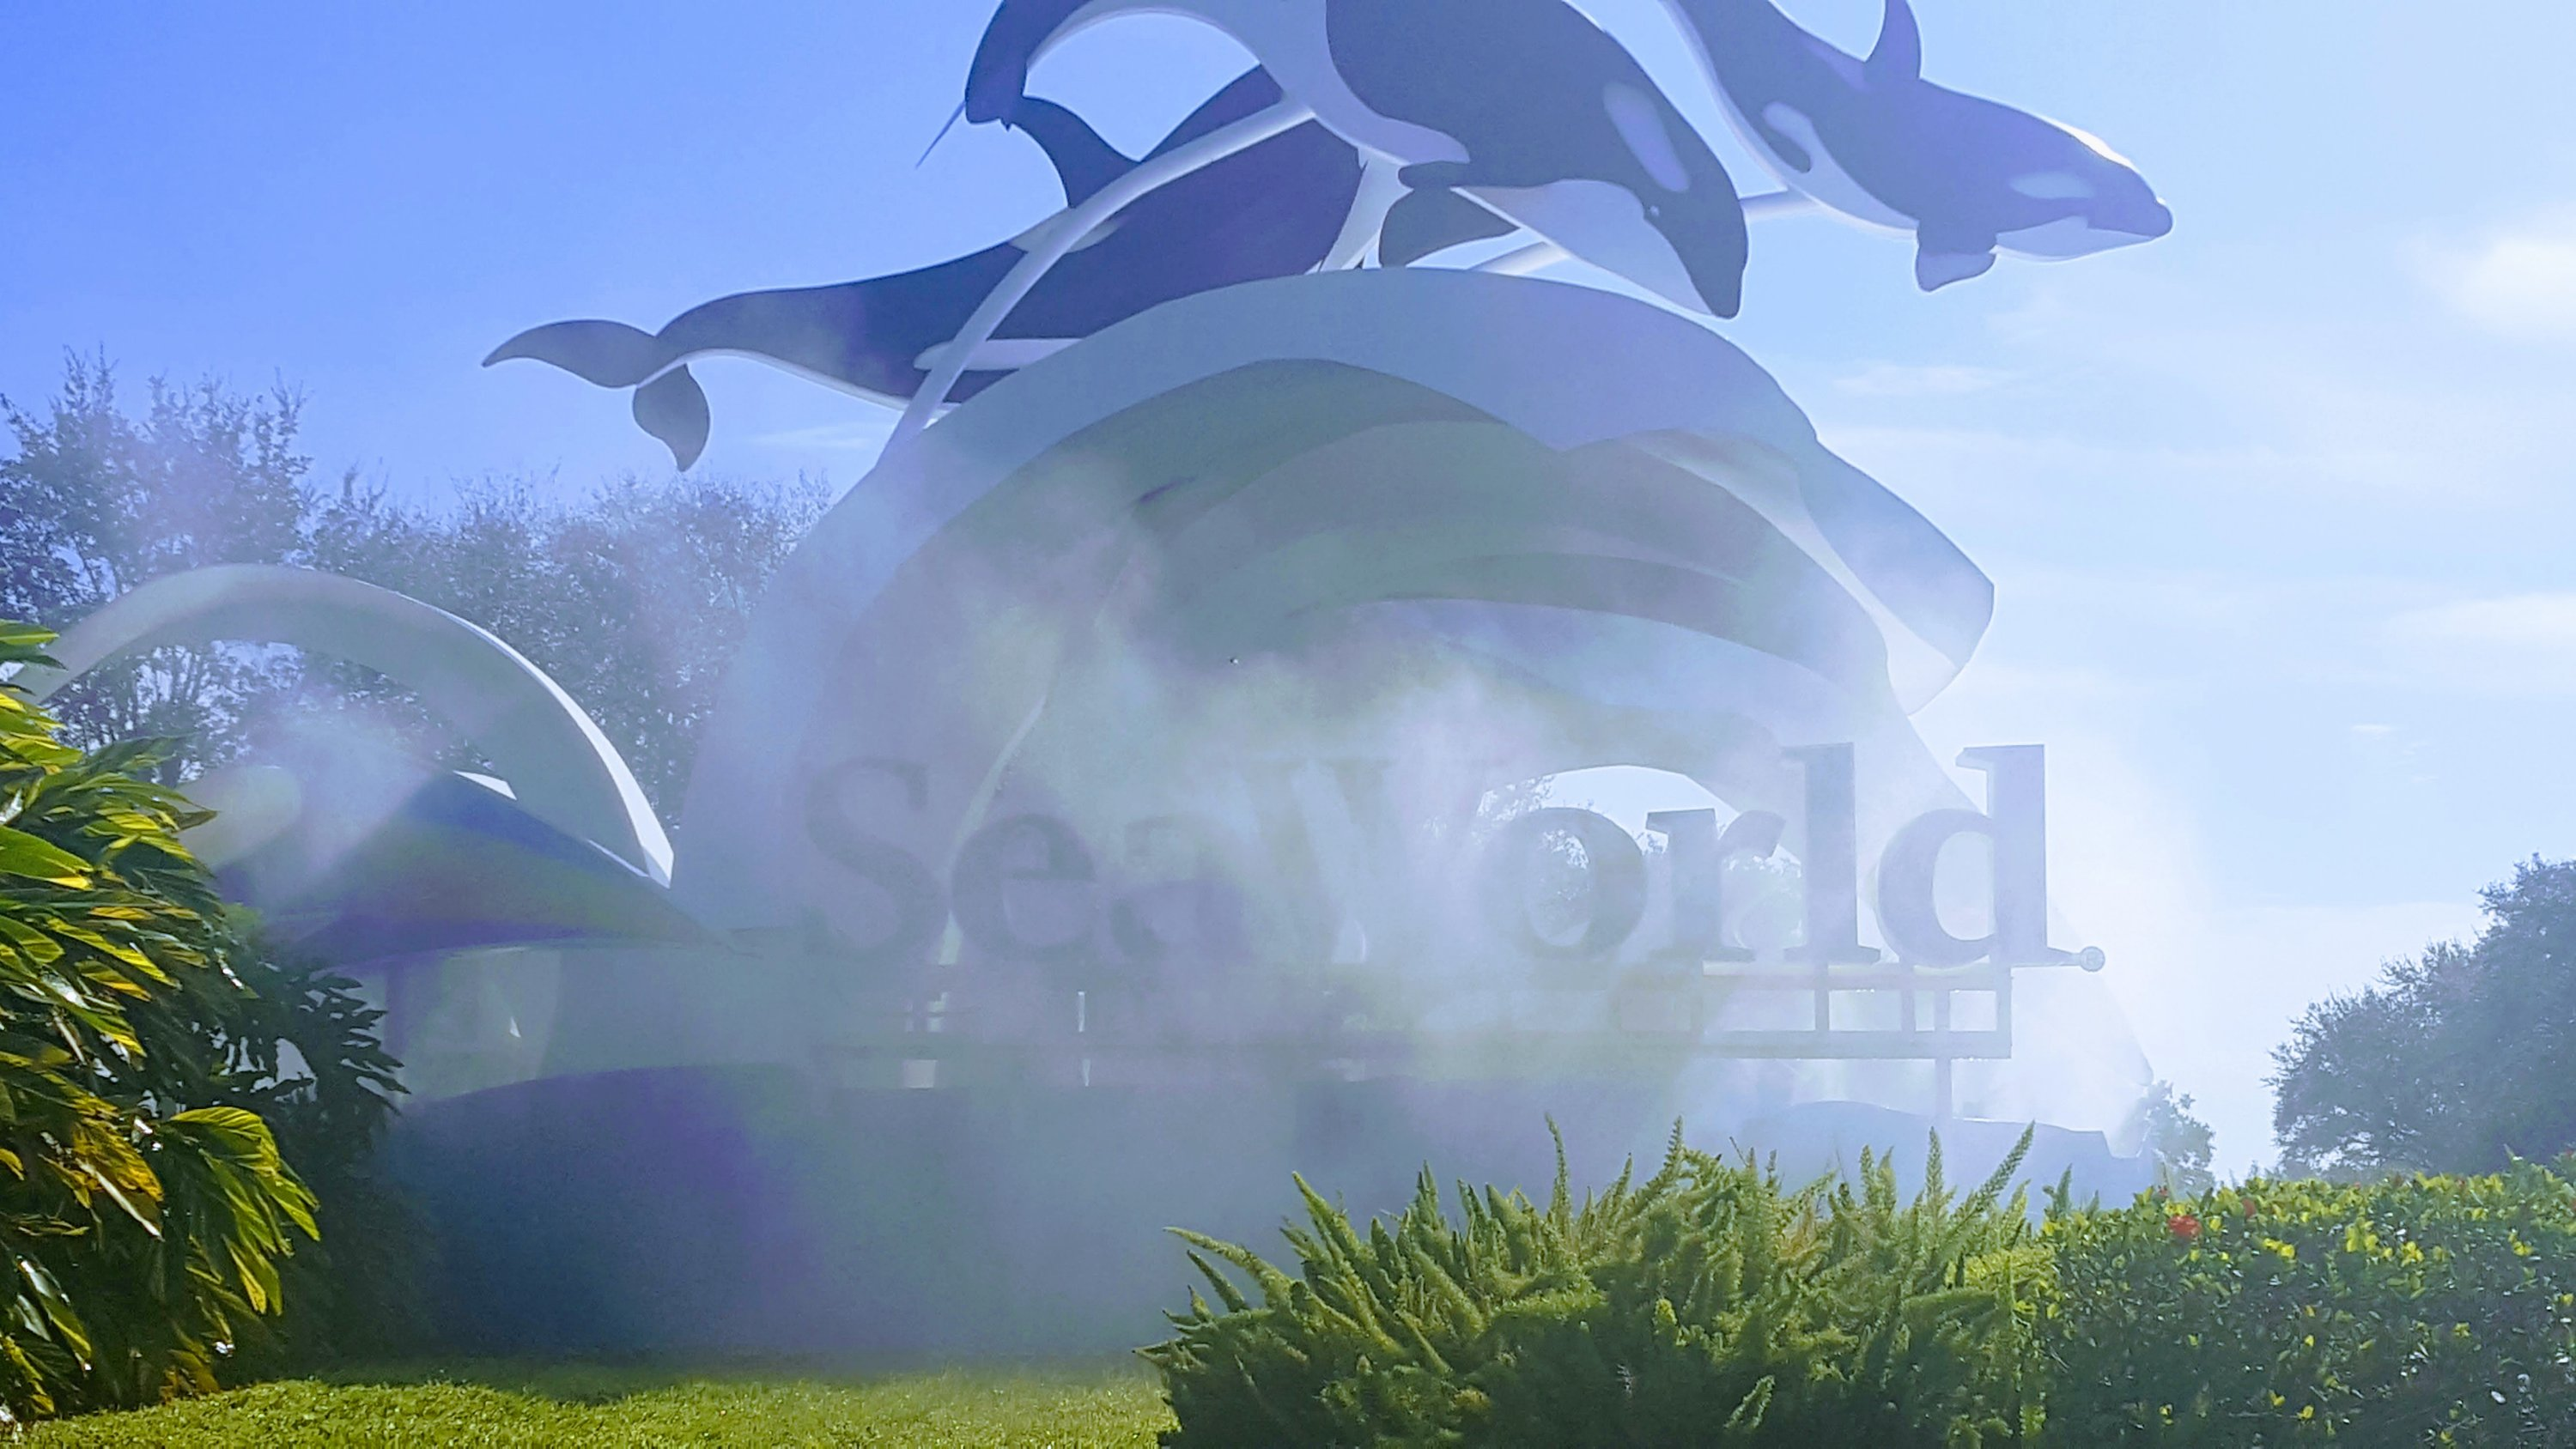 Cyber Monday travel deals include buy one get one free at Seaworld!